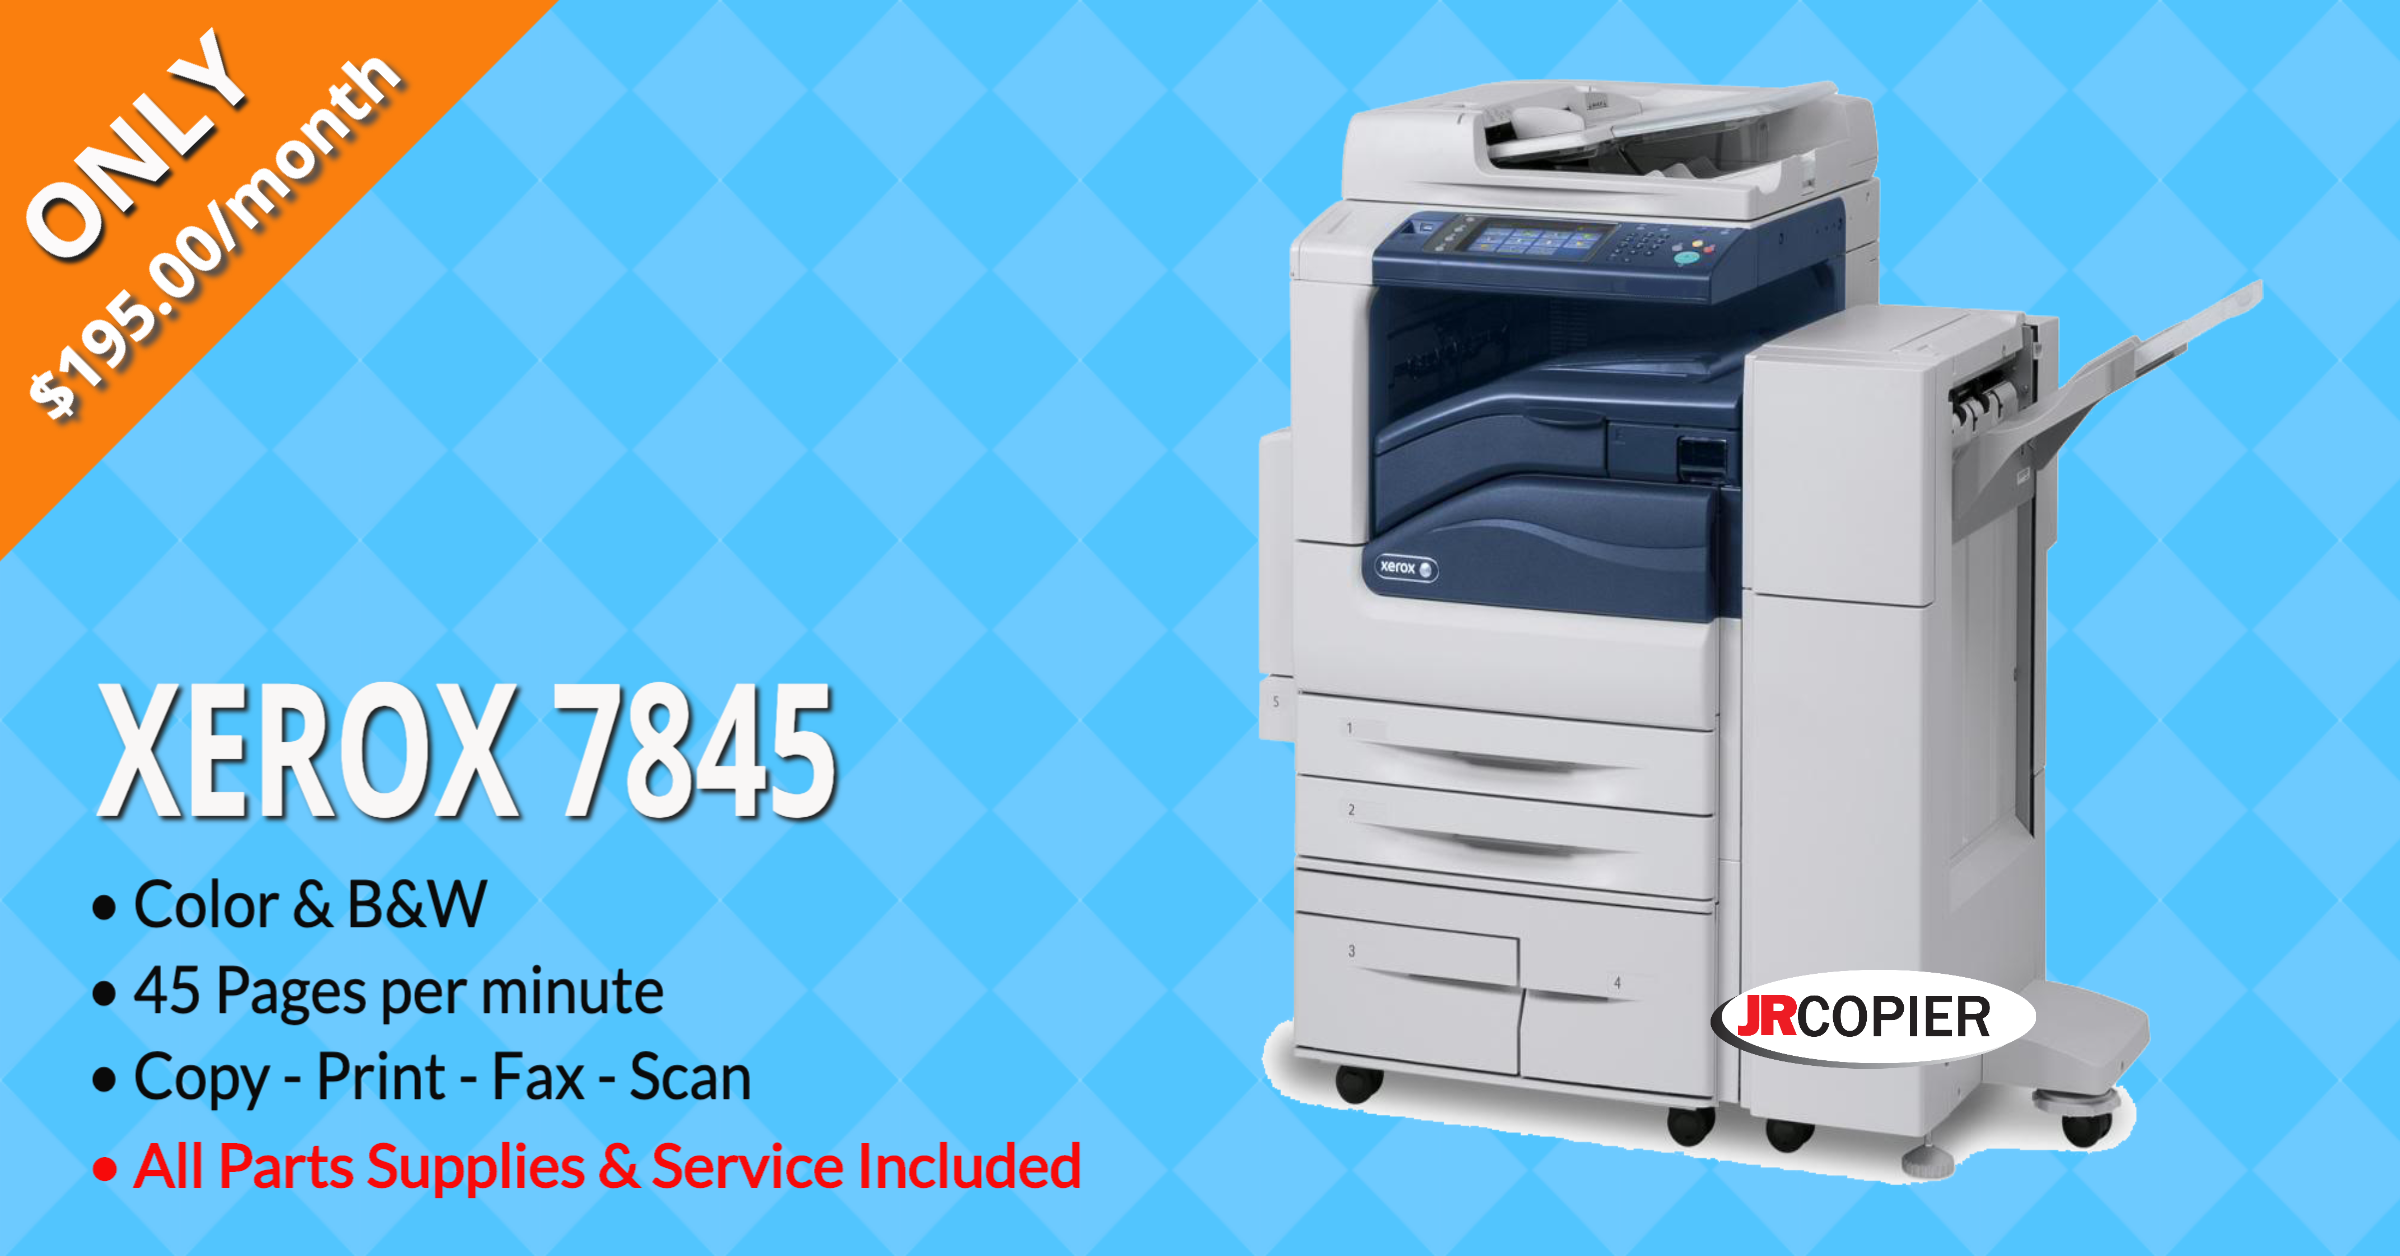 Multifunction Printer Sales 07751